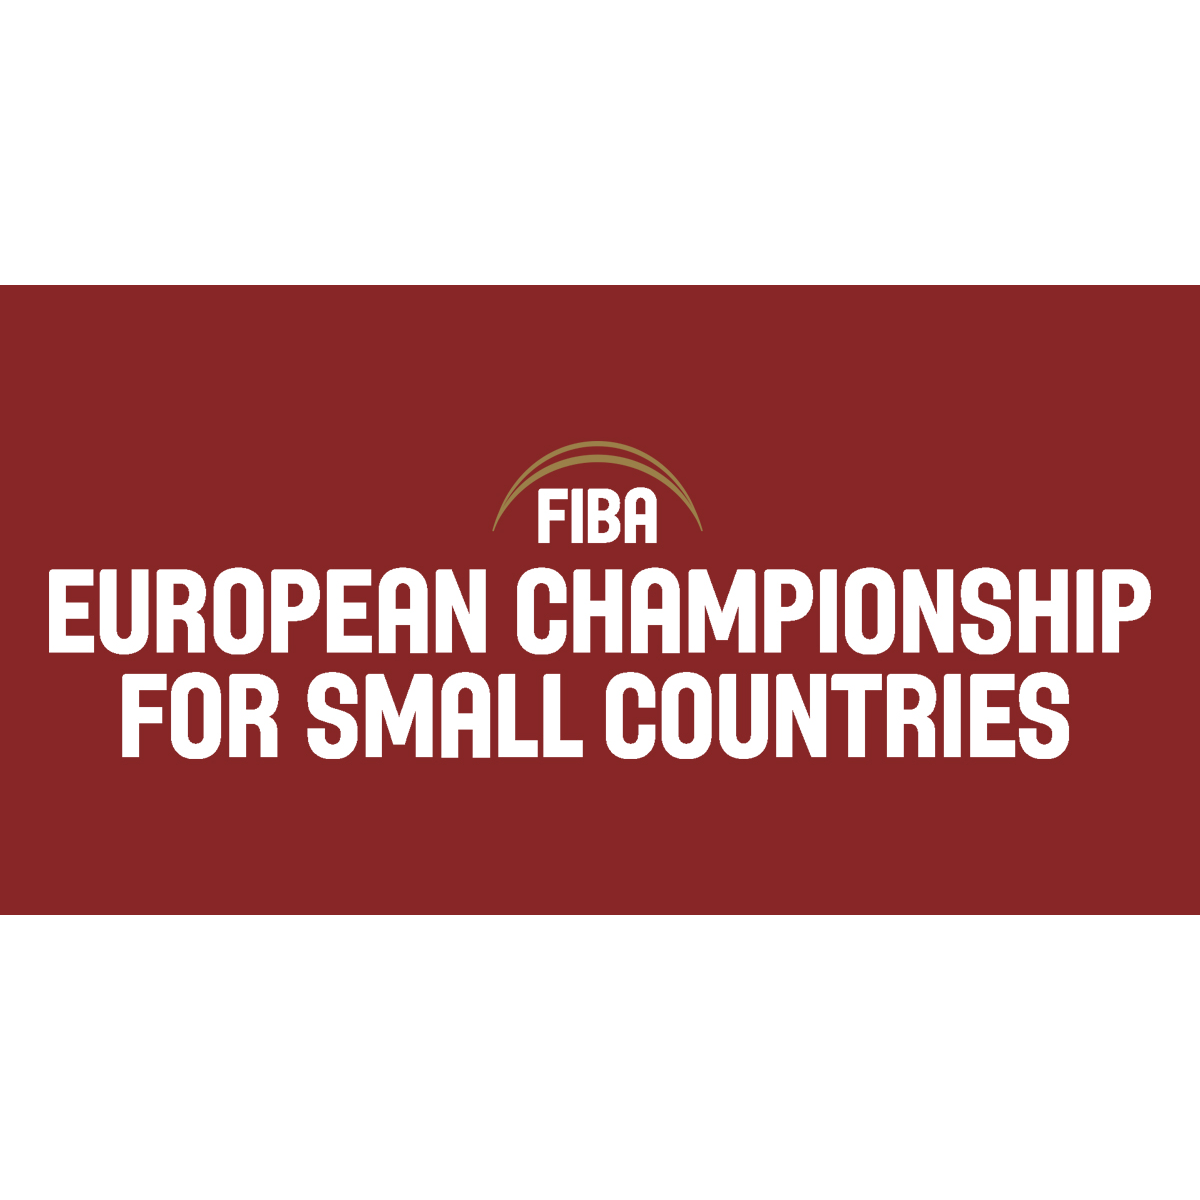 2021 FIBA Basketball European Championship for Small Countries